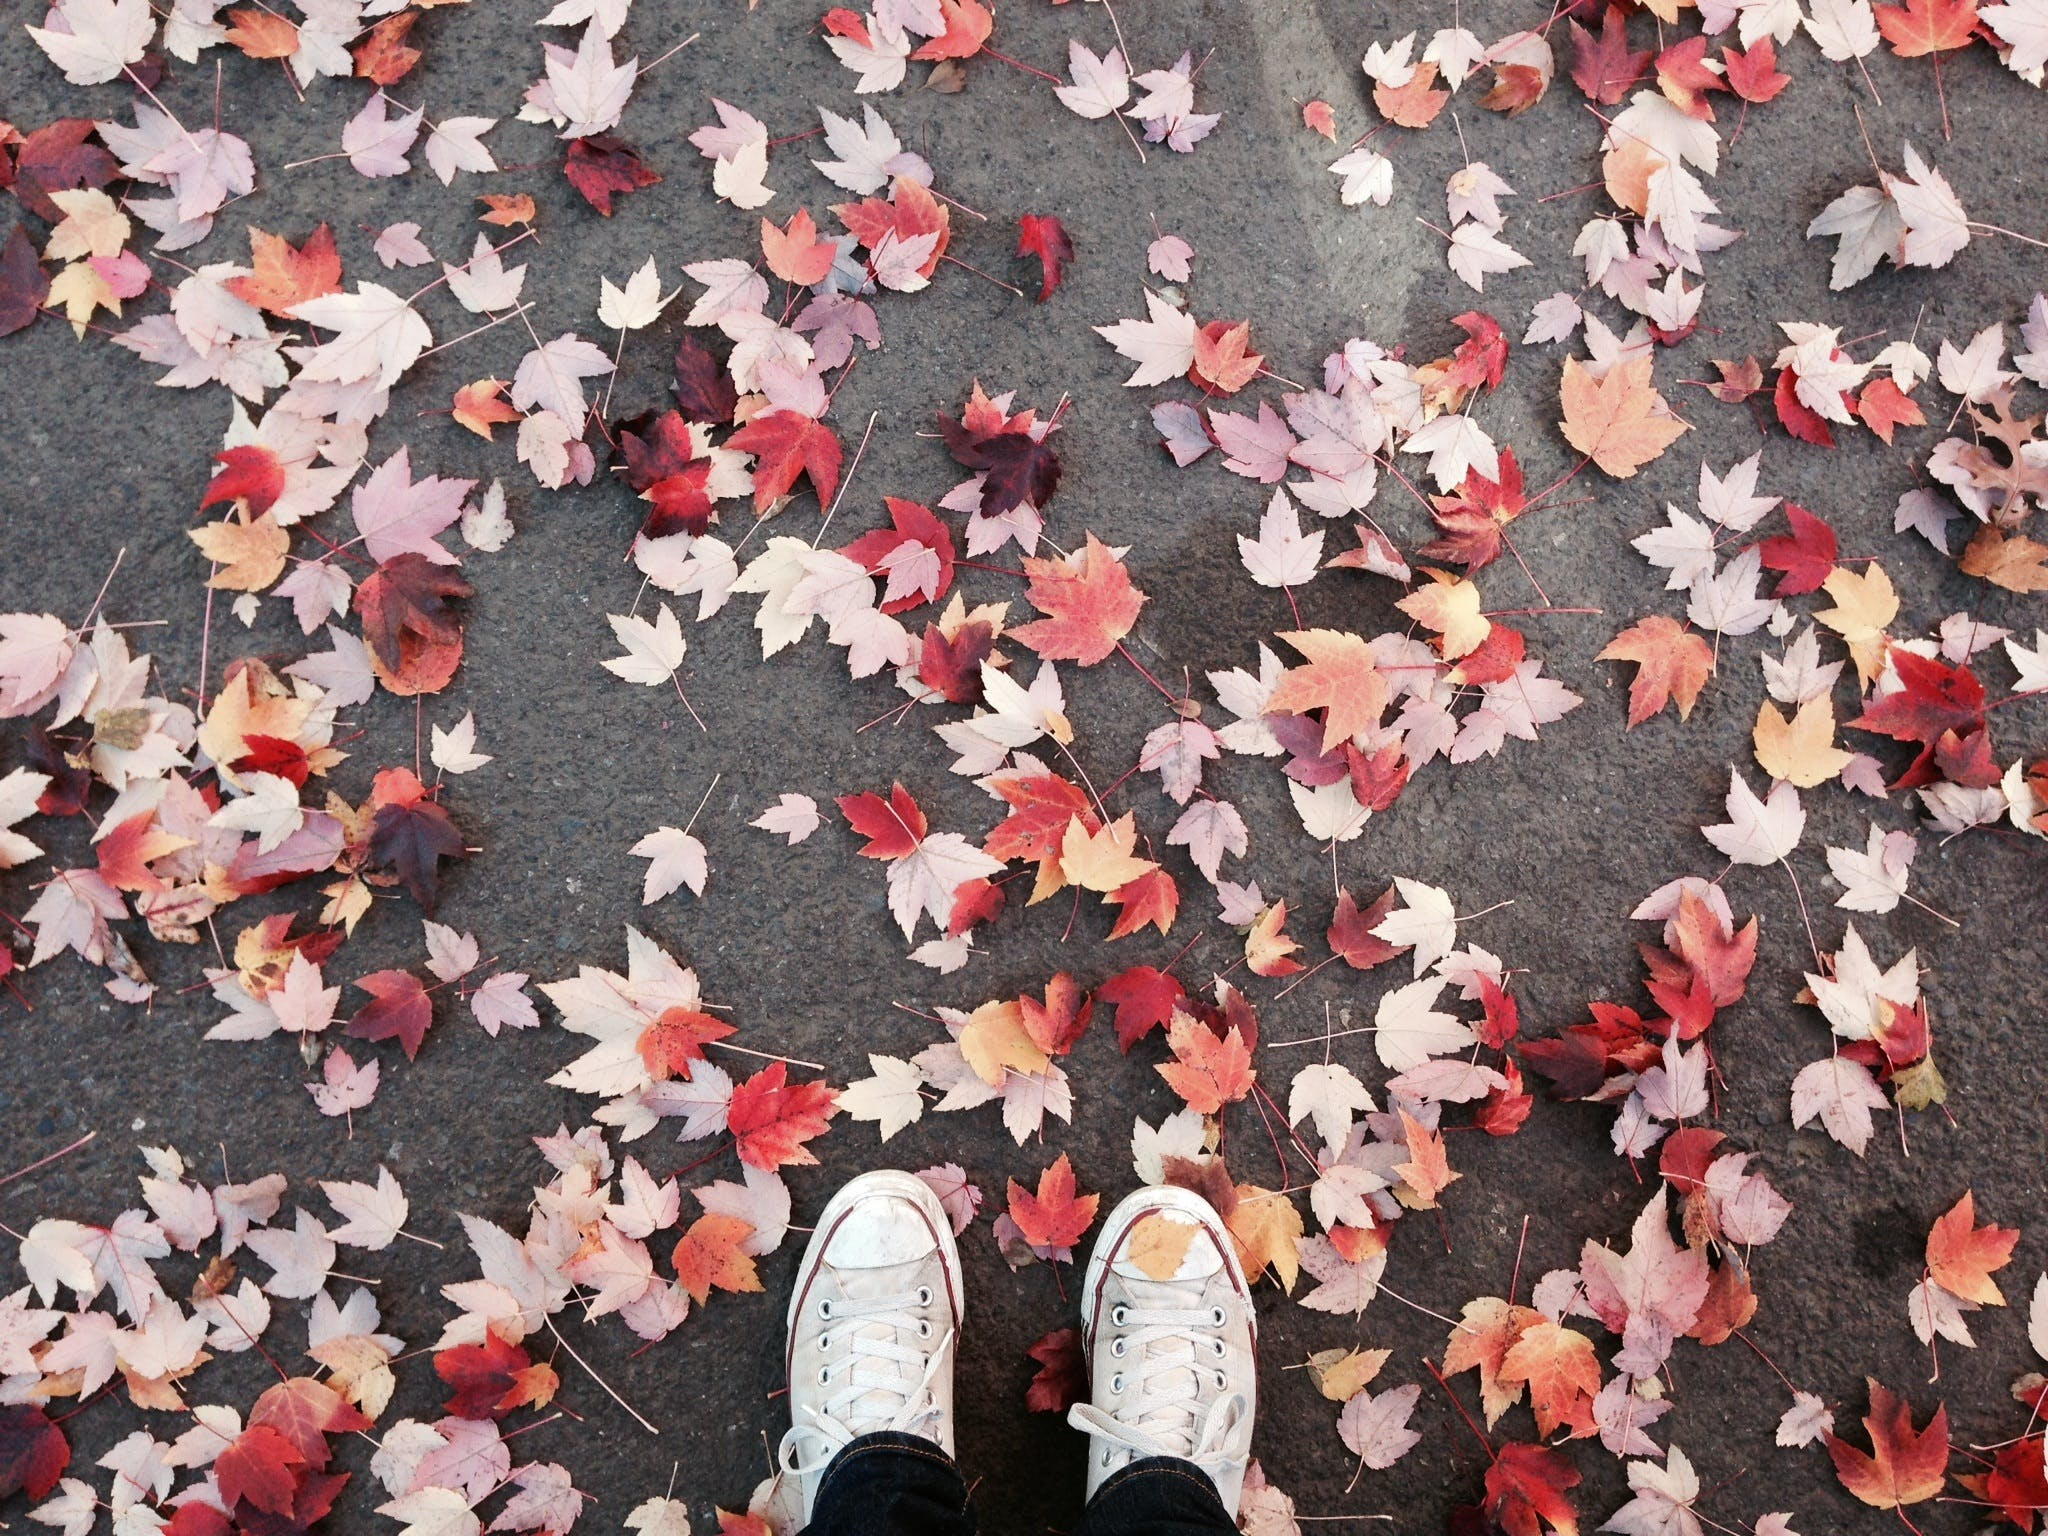 Person Standing on Top of Red and White Leaves